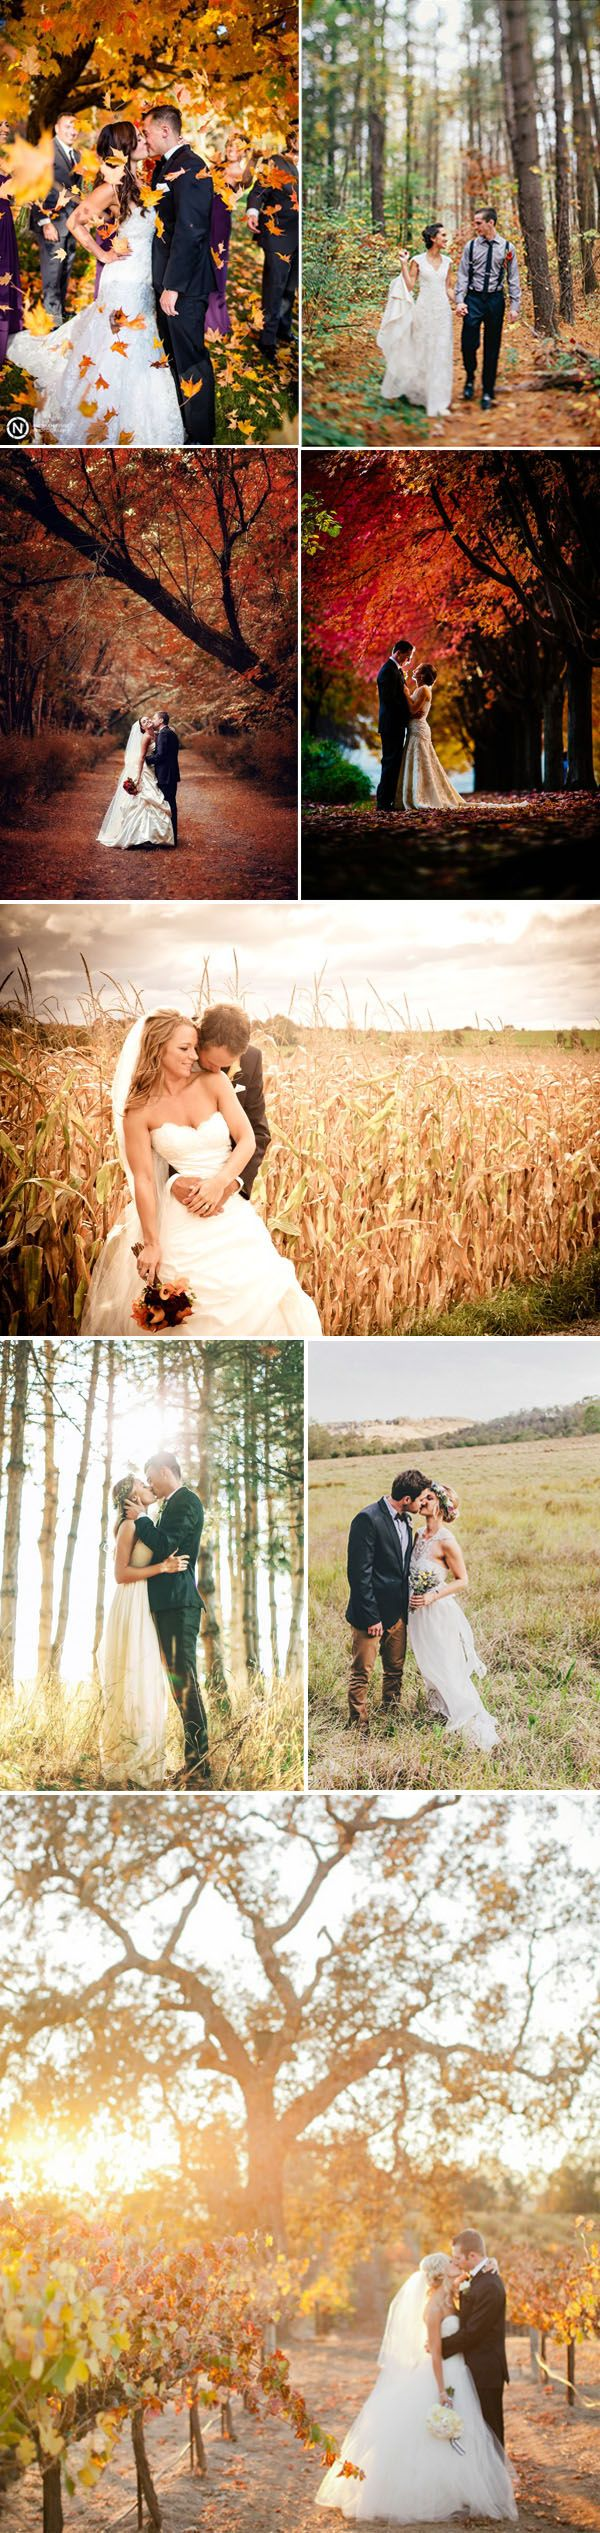 gorgeous autumn season wedding photo ideas